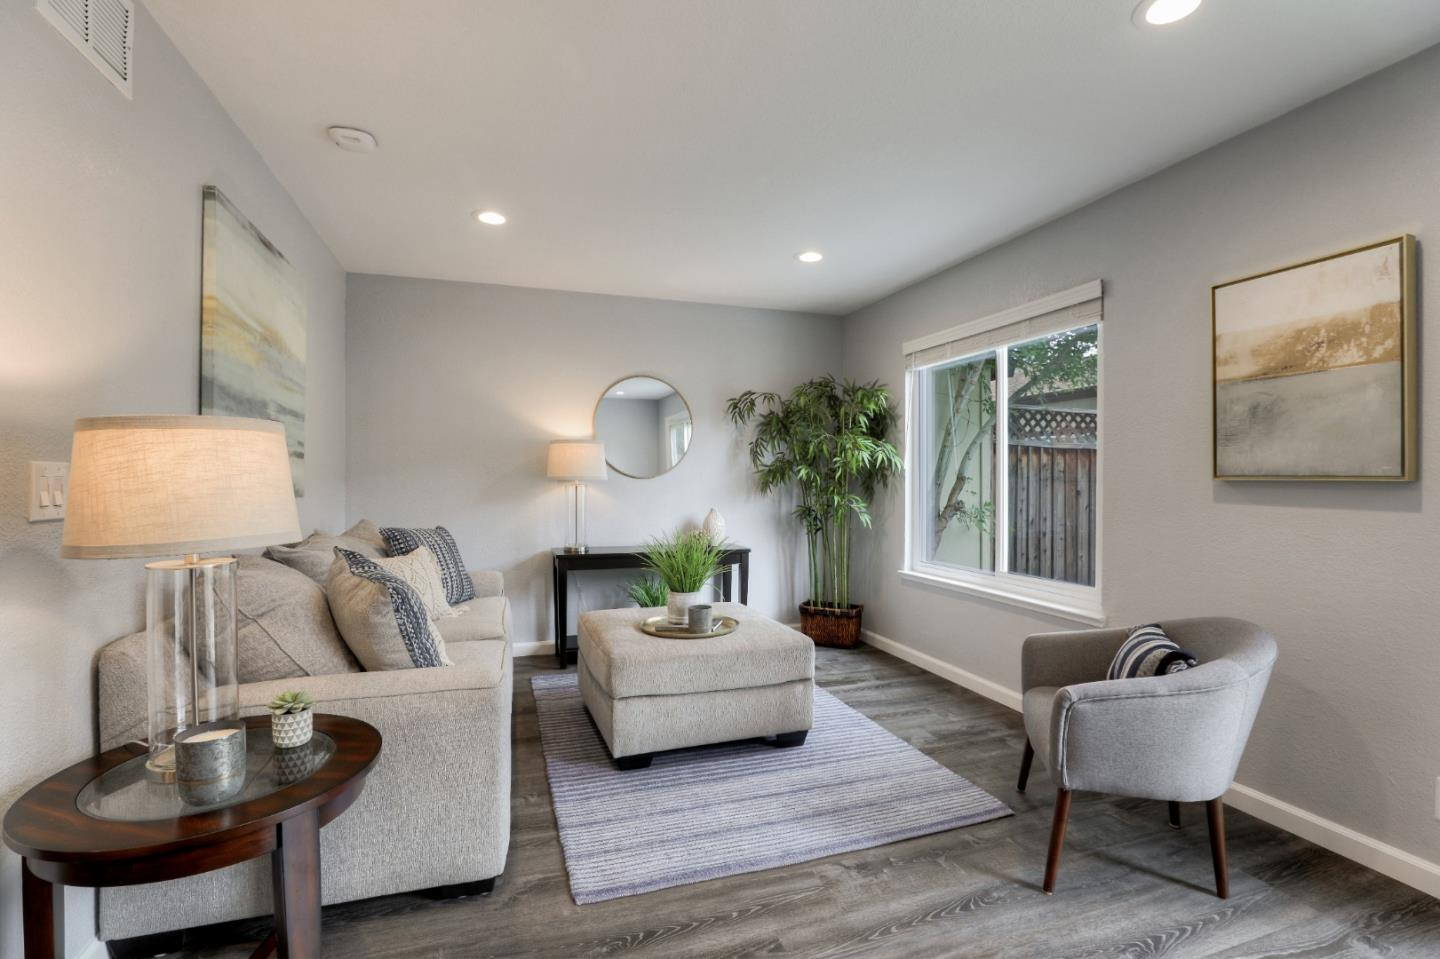 Detail Gallery Image 1 of 24 For 2084 Swensen Ct, San Jose, CA, 95131 - 4 Beds | 1/1 Baths